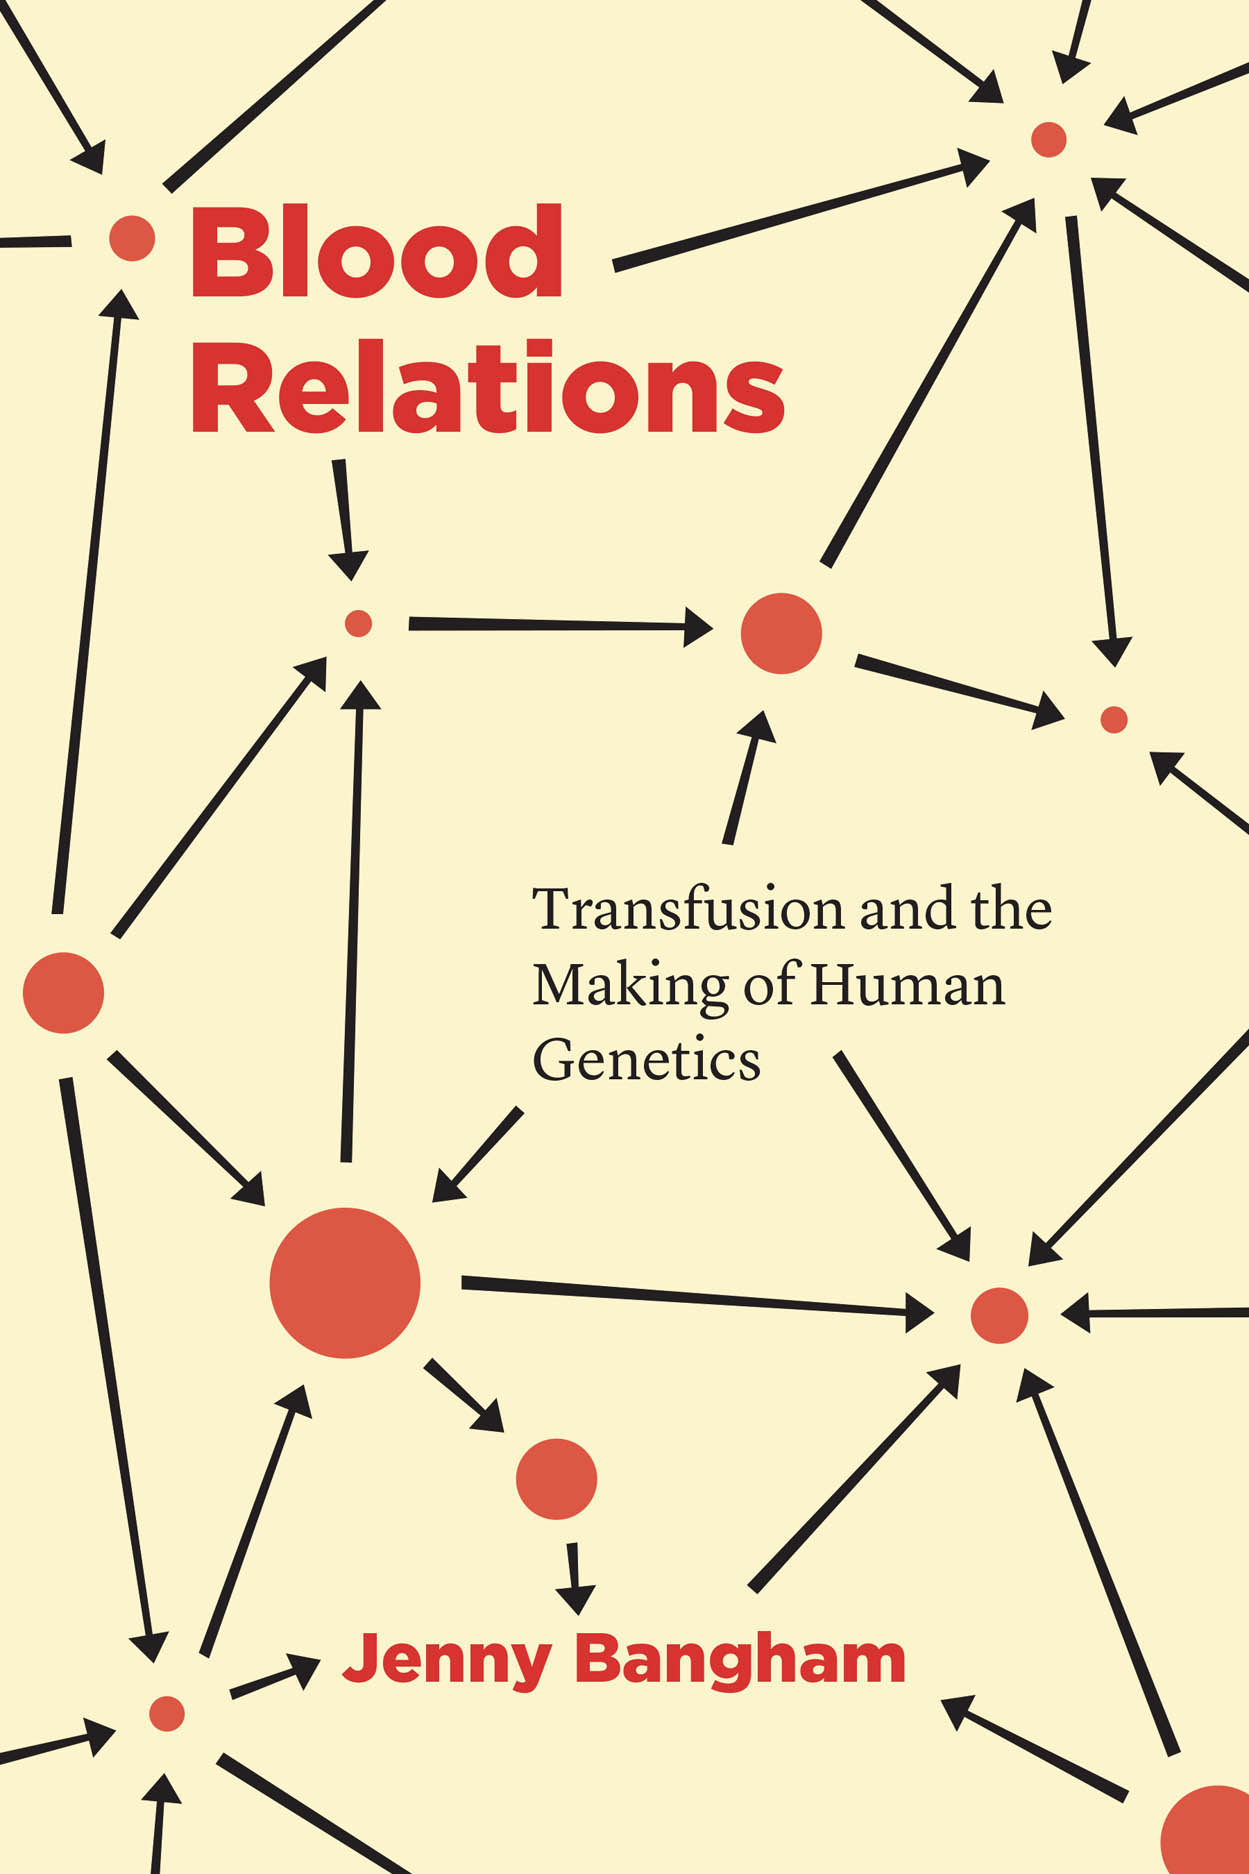 Blood Relations: Transfusion and the Making of Human Genetics